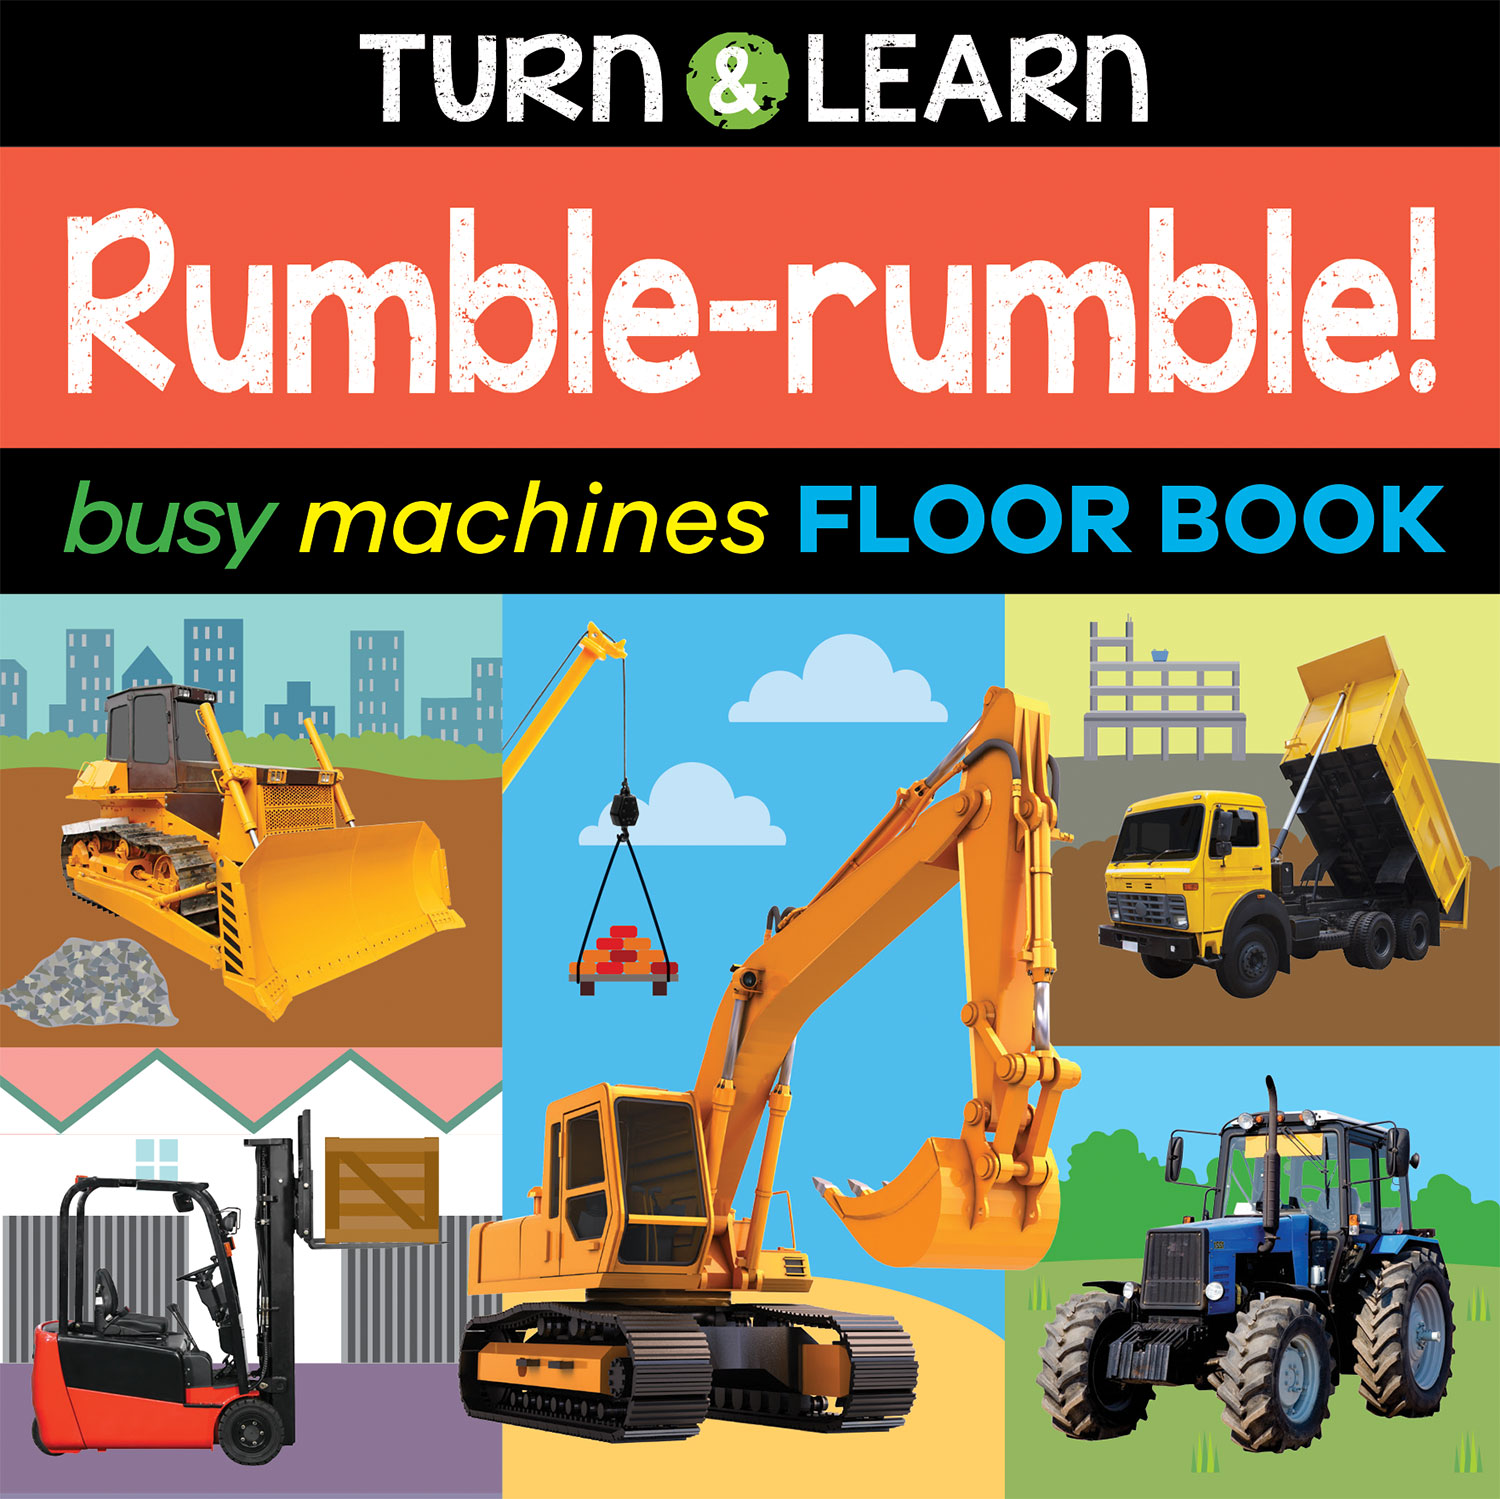 BUSY MACHINES FLOOR BOOK